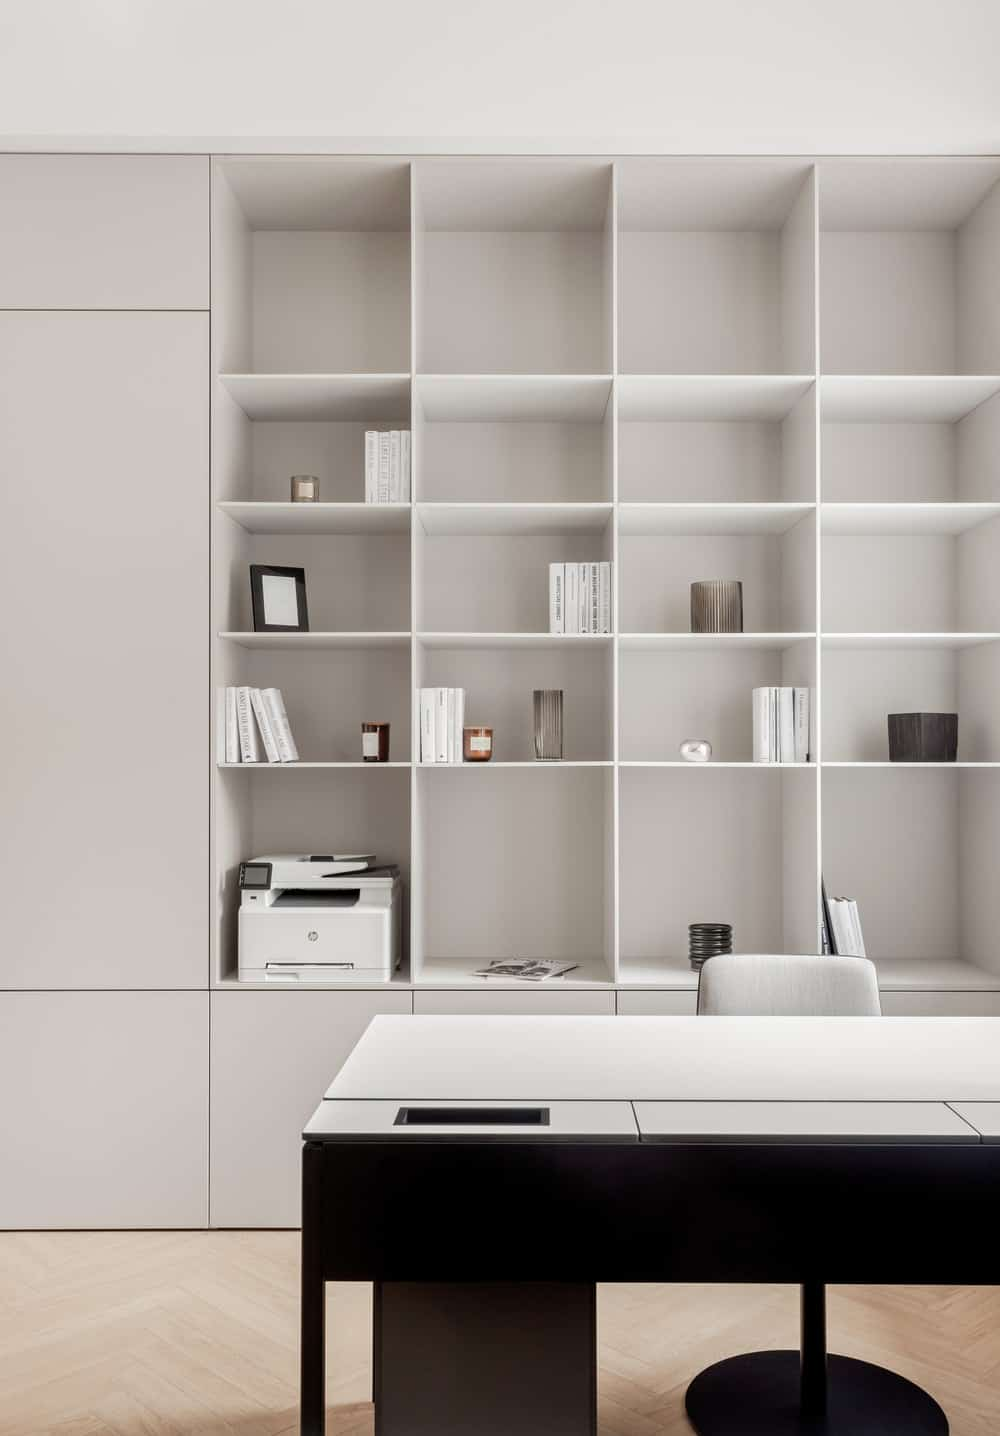 This is a closer look at the large dark desk and its built-in shelves behind that has a large space enough for office essentials.